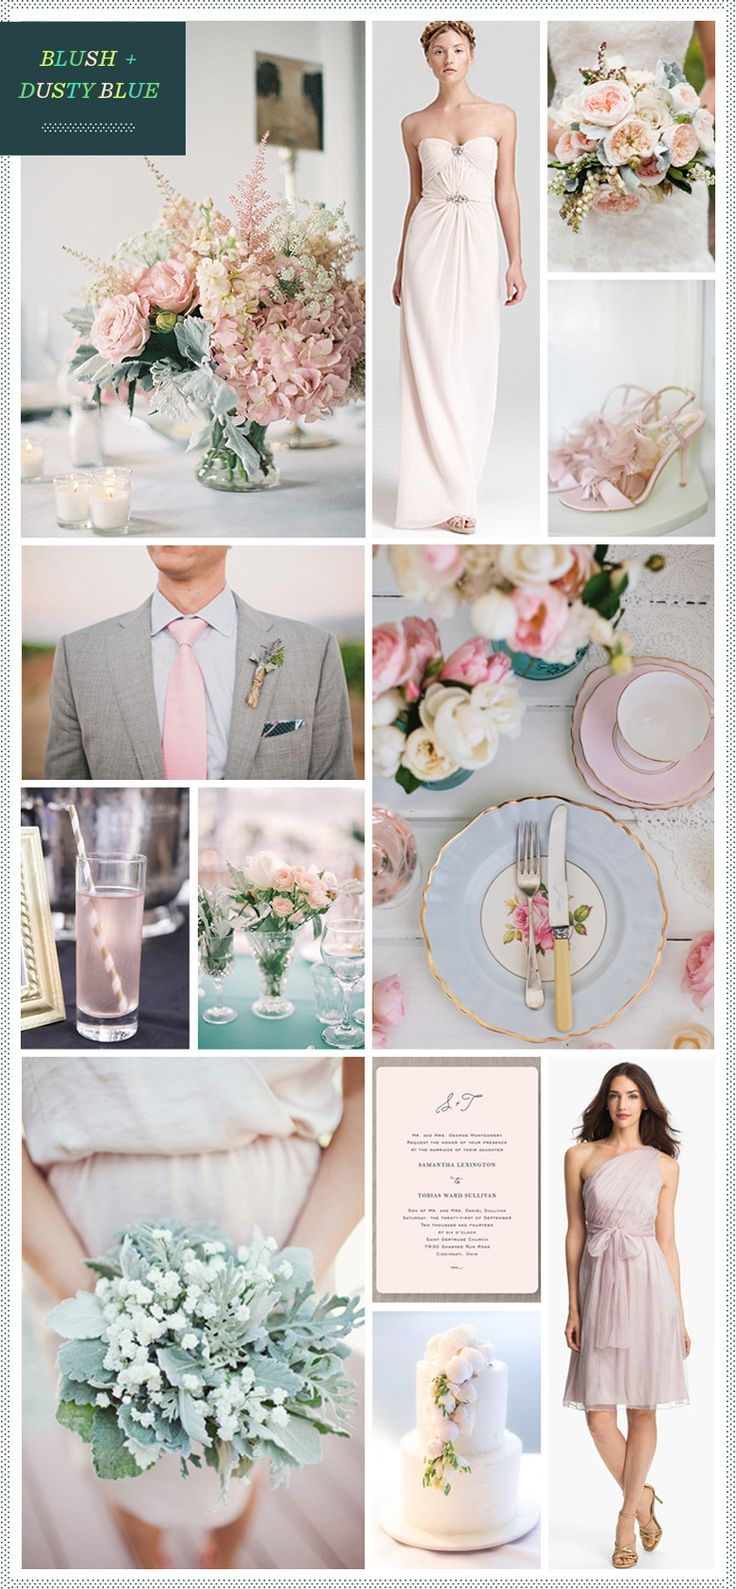 blush colored wedding decorations 17 best images about blush and dusty blue on 1980